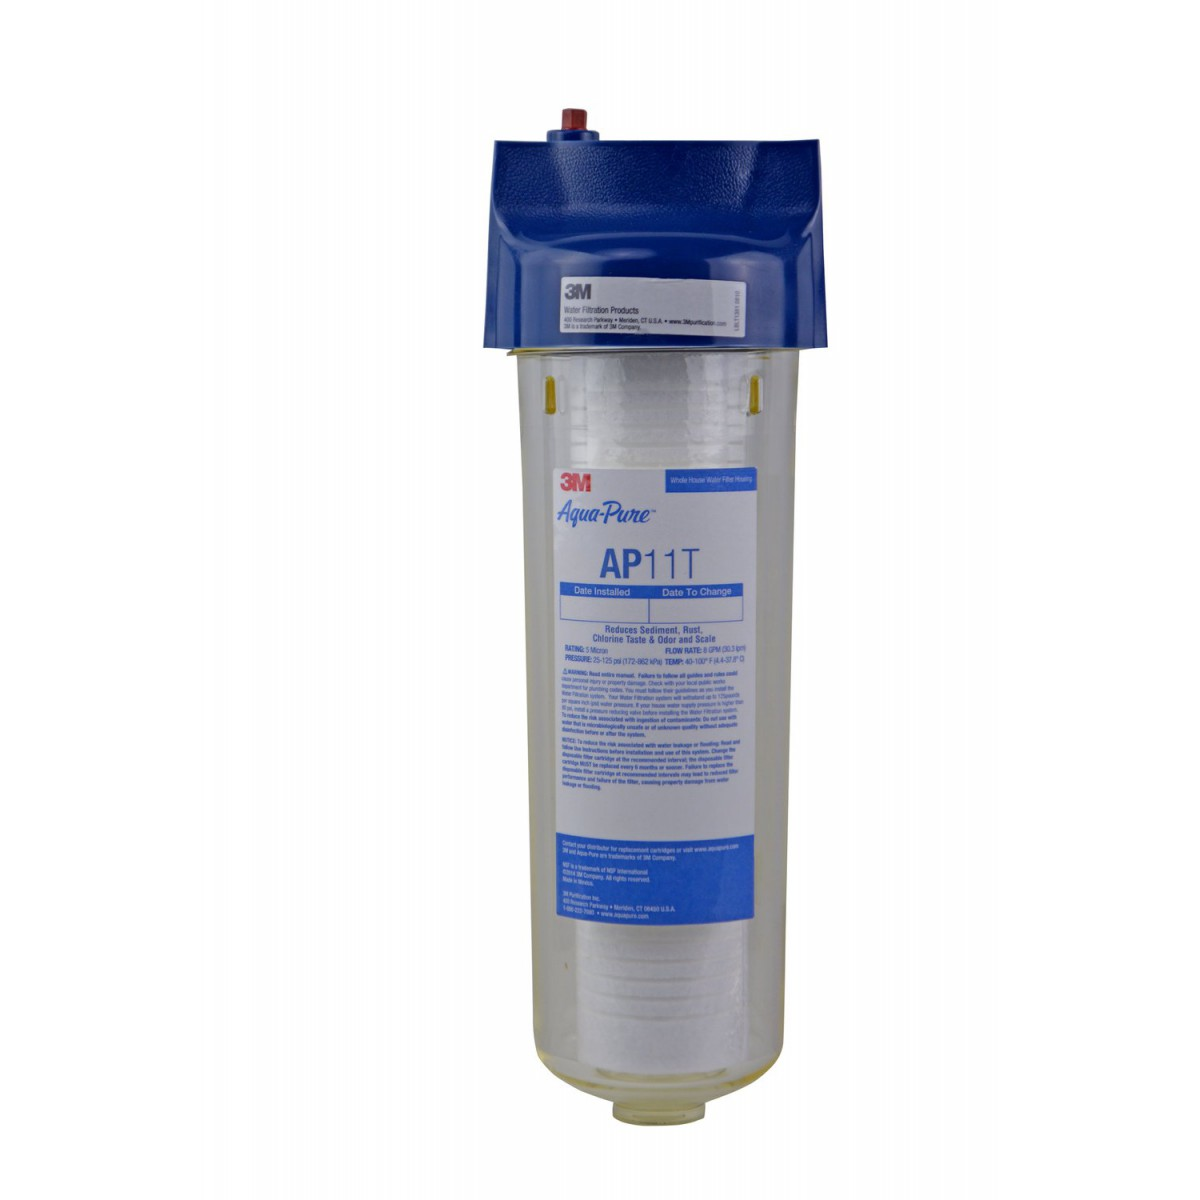 3m Aqua Pure Ap11t Whole House Water Filtration System